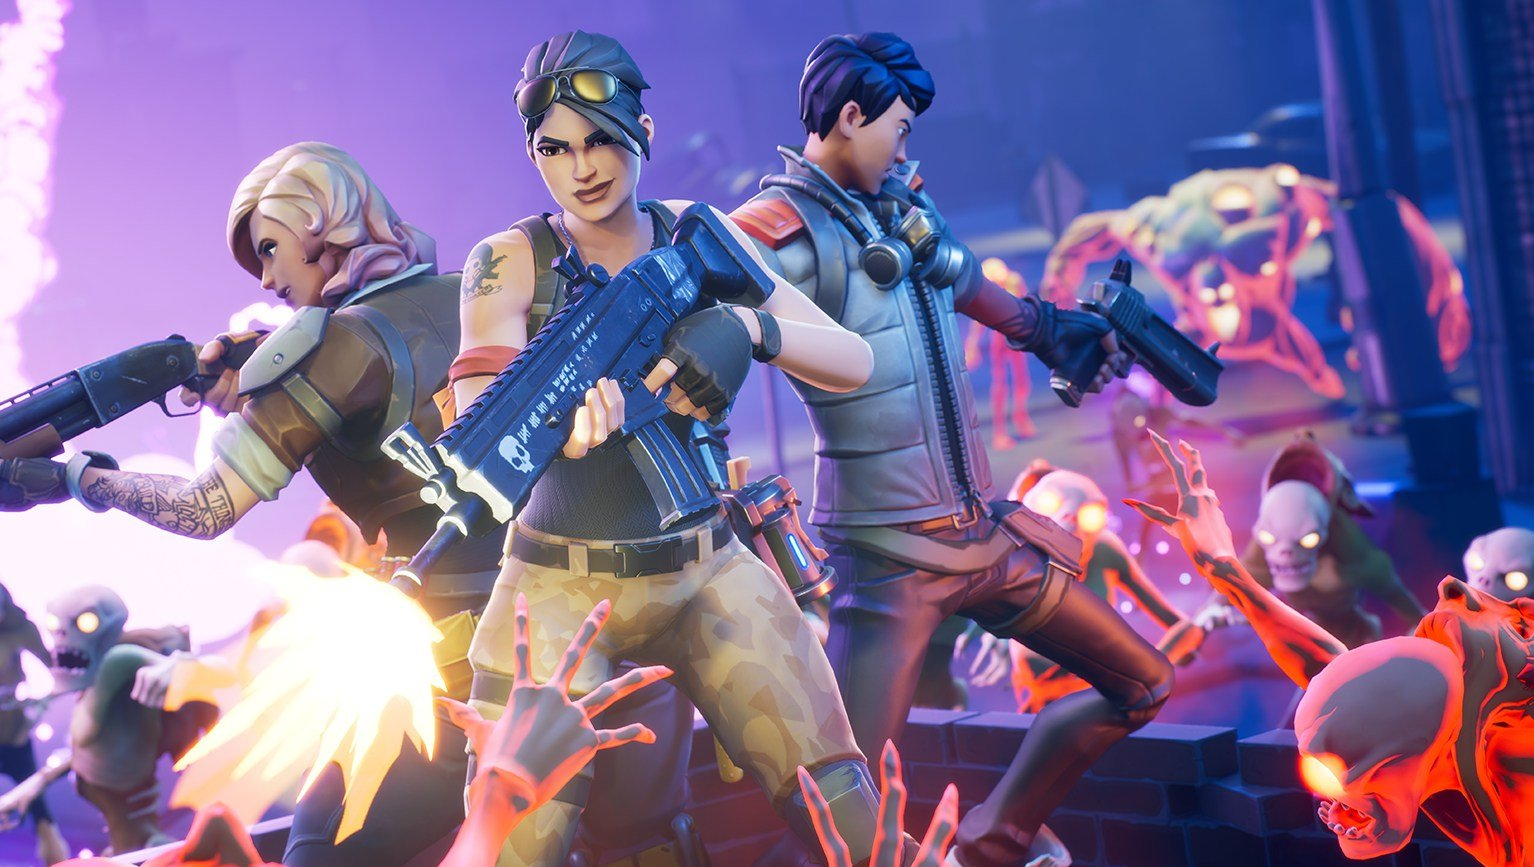 Fortnite's 'Save the World' mode has free-to-play launch pushed into 2019 screenshot